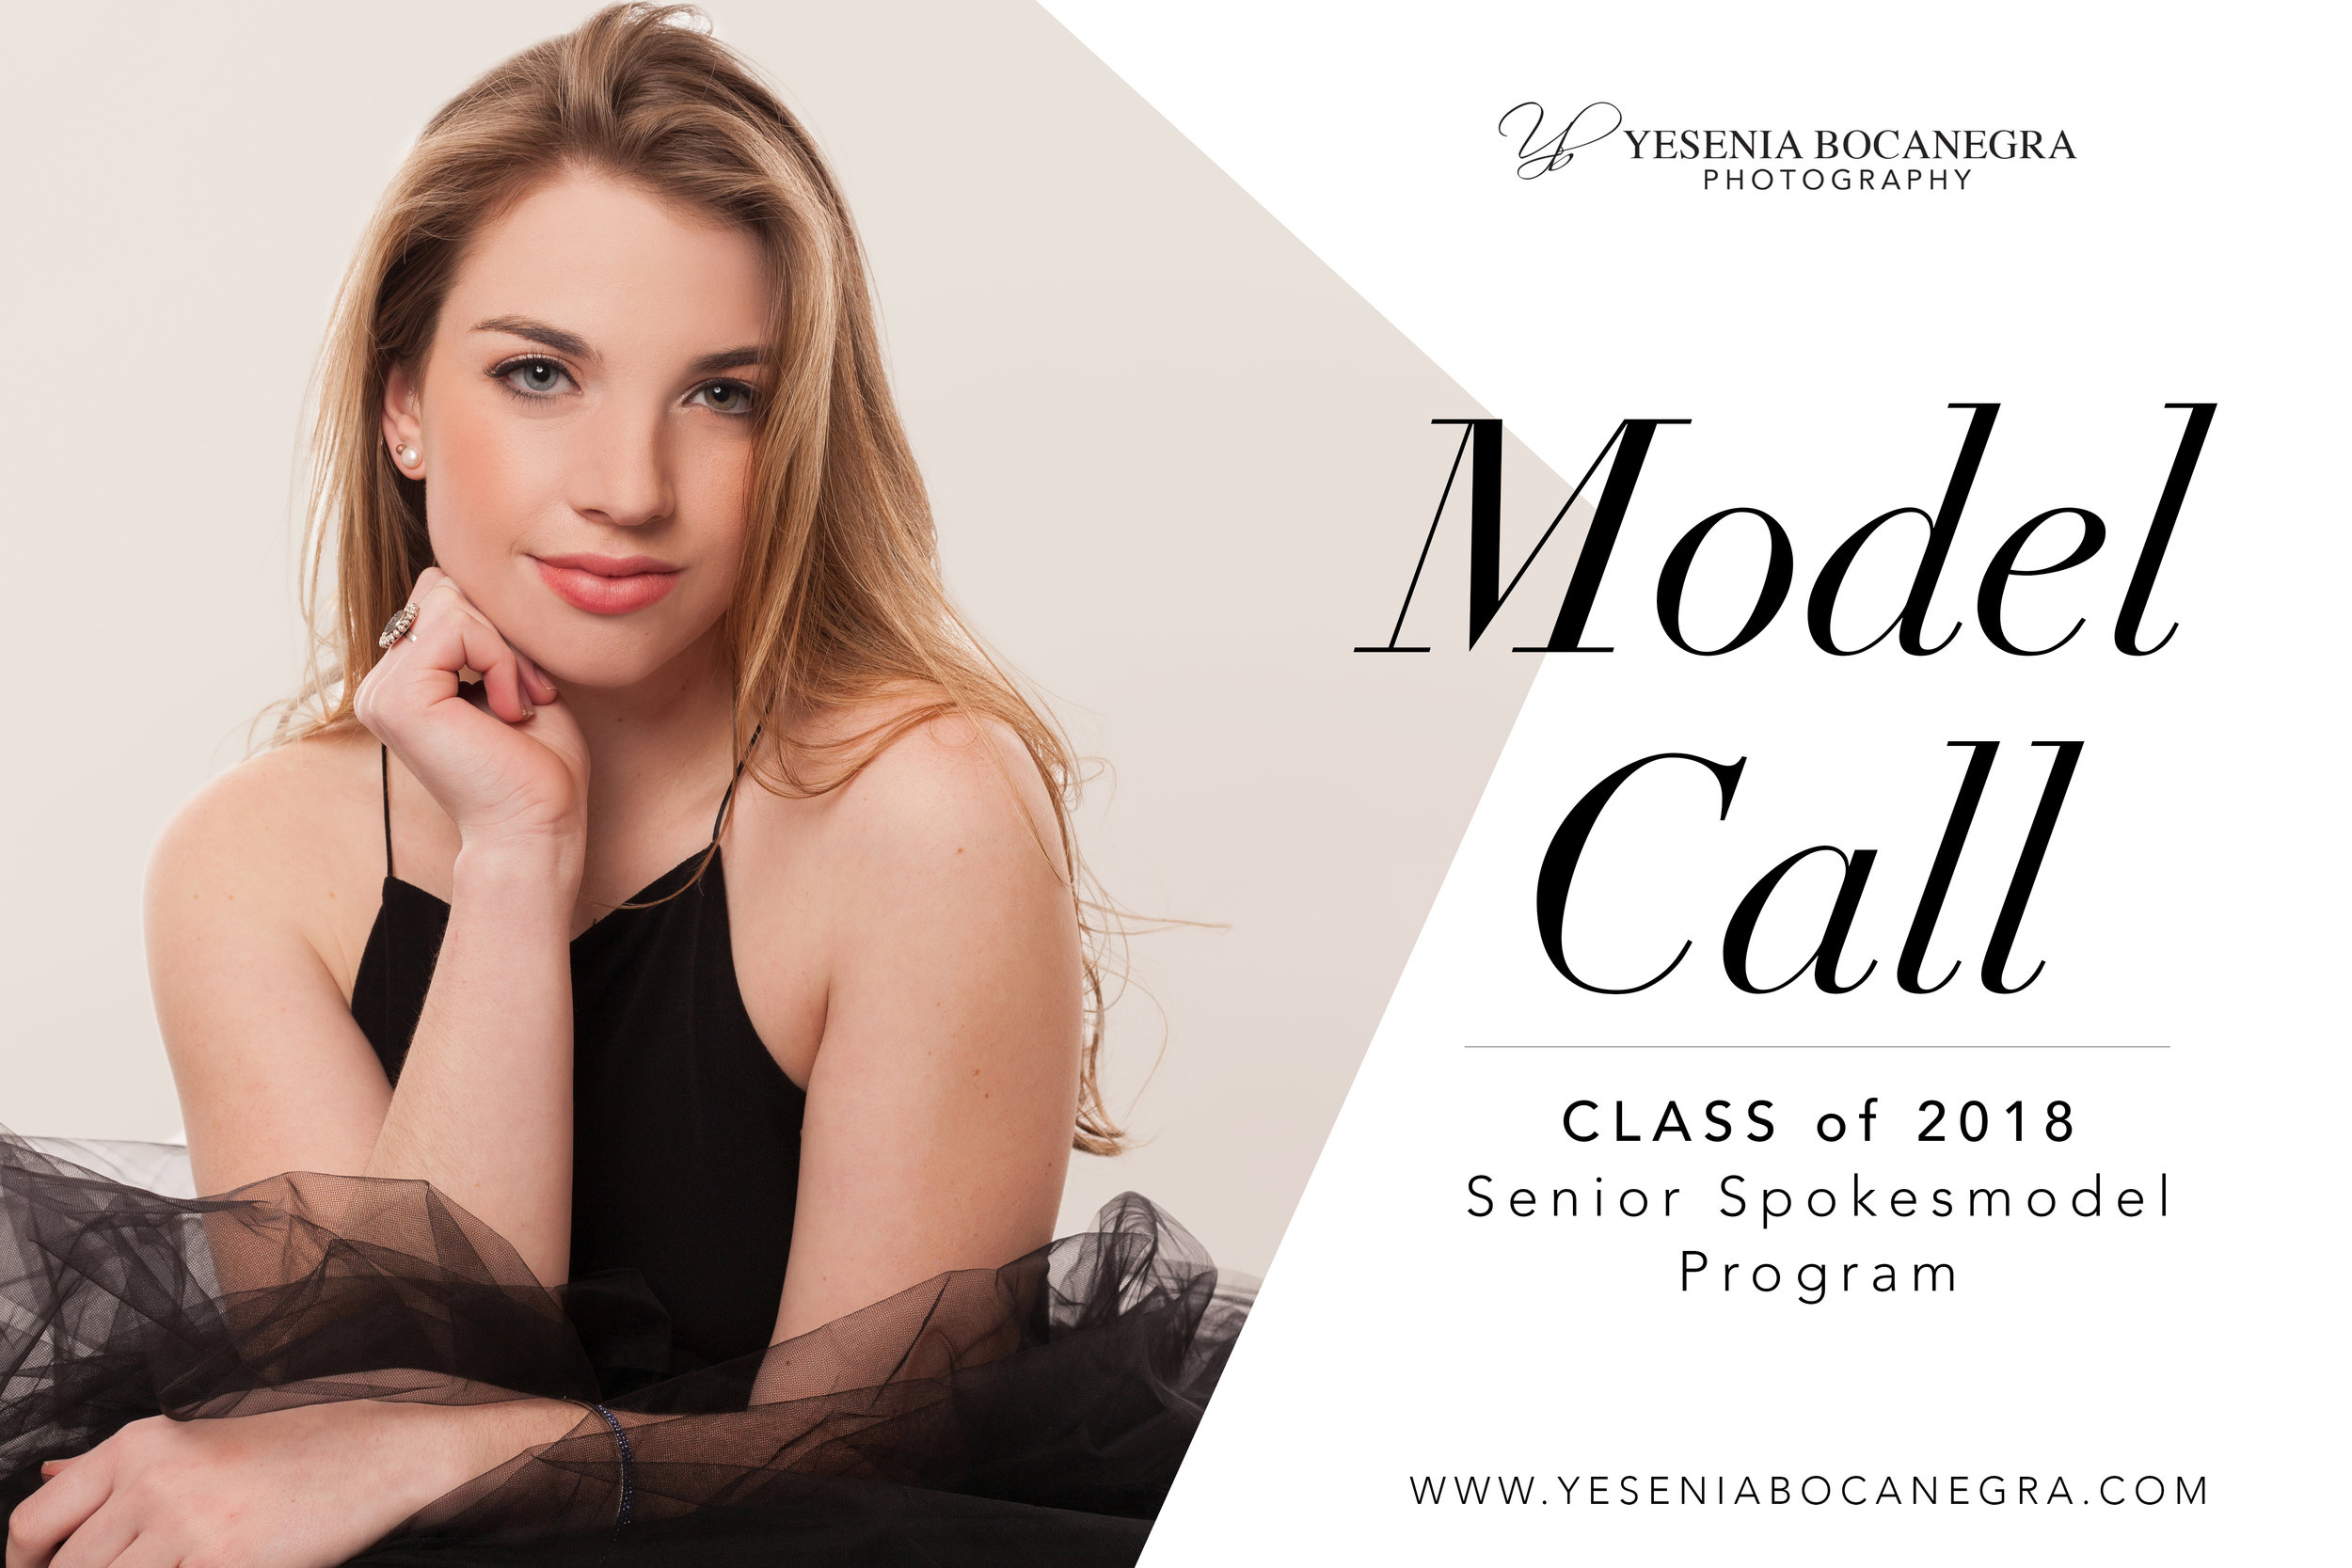 Accepting applications for our brand new Senior Spokesmodel Program for the Class of 2018. Must be a resident of the Raleigh-Durham-Chapel Hill area to participate.